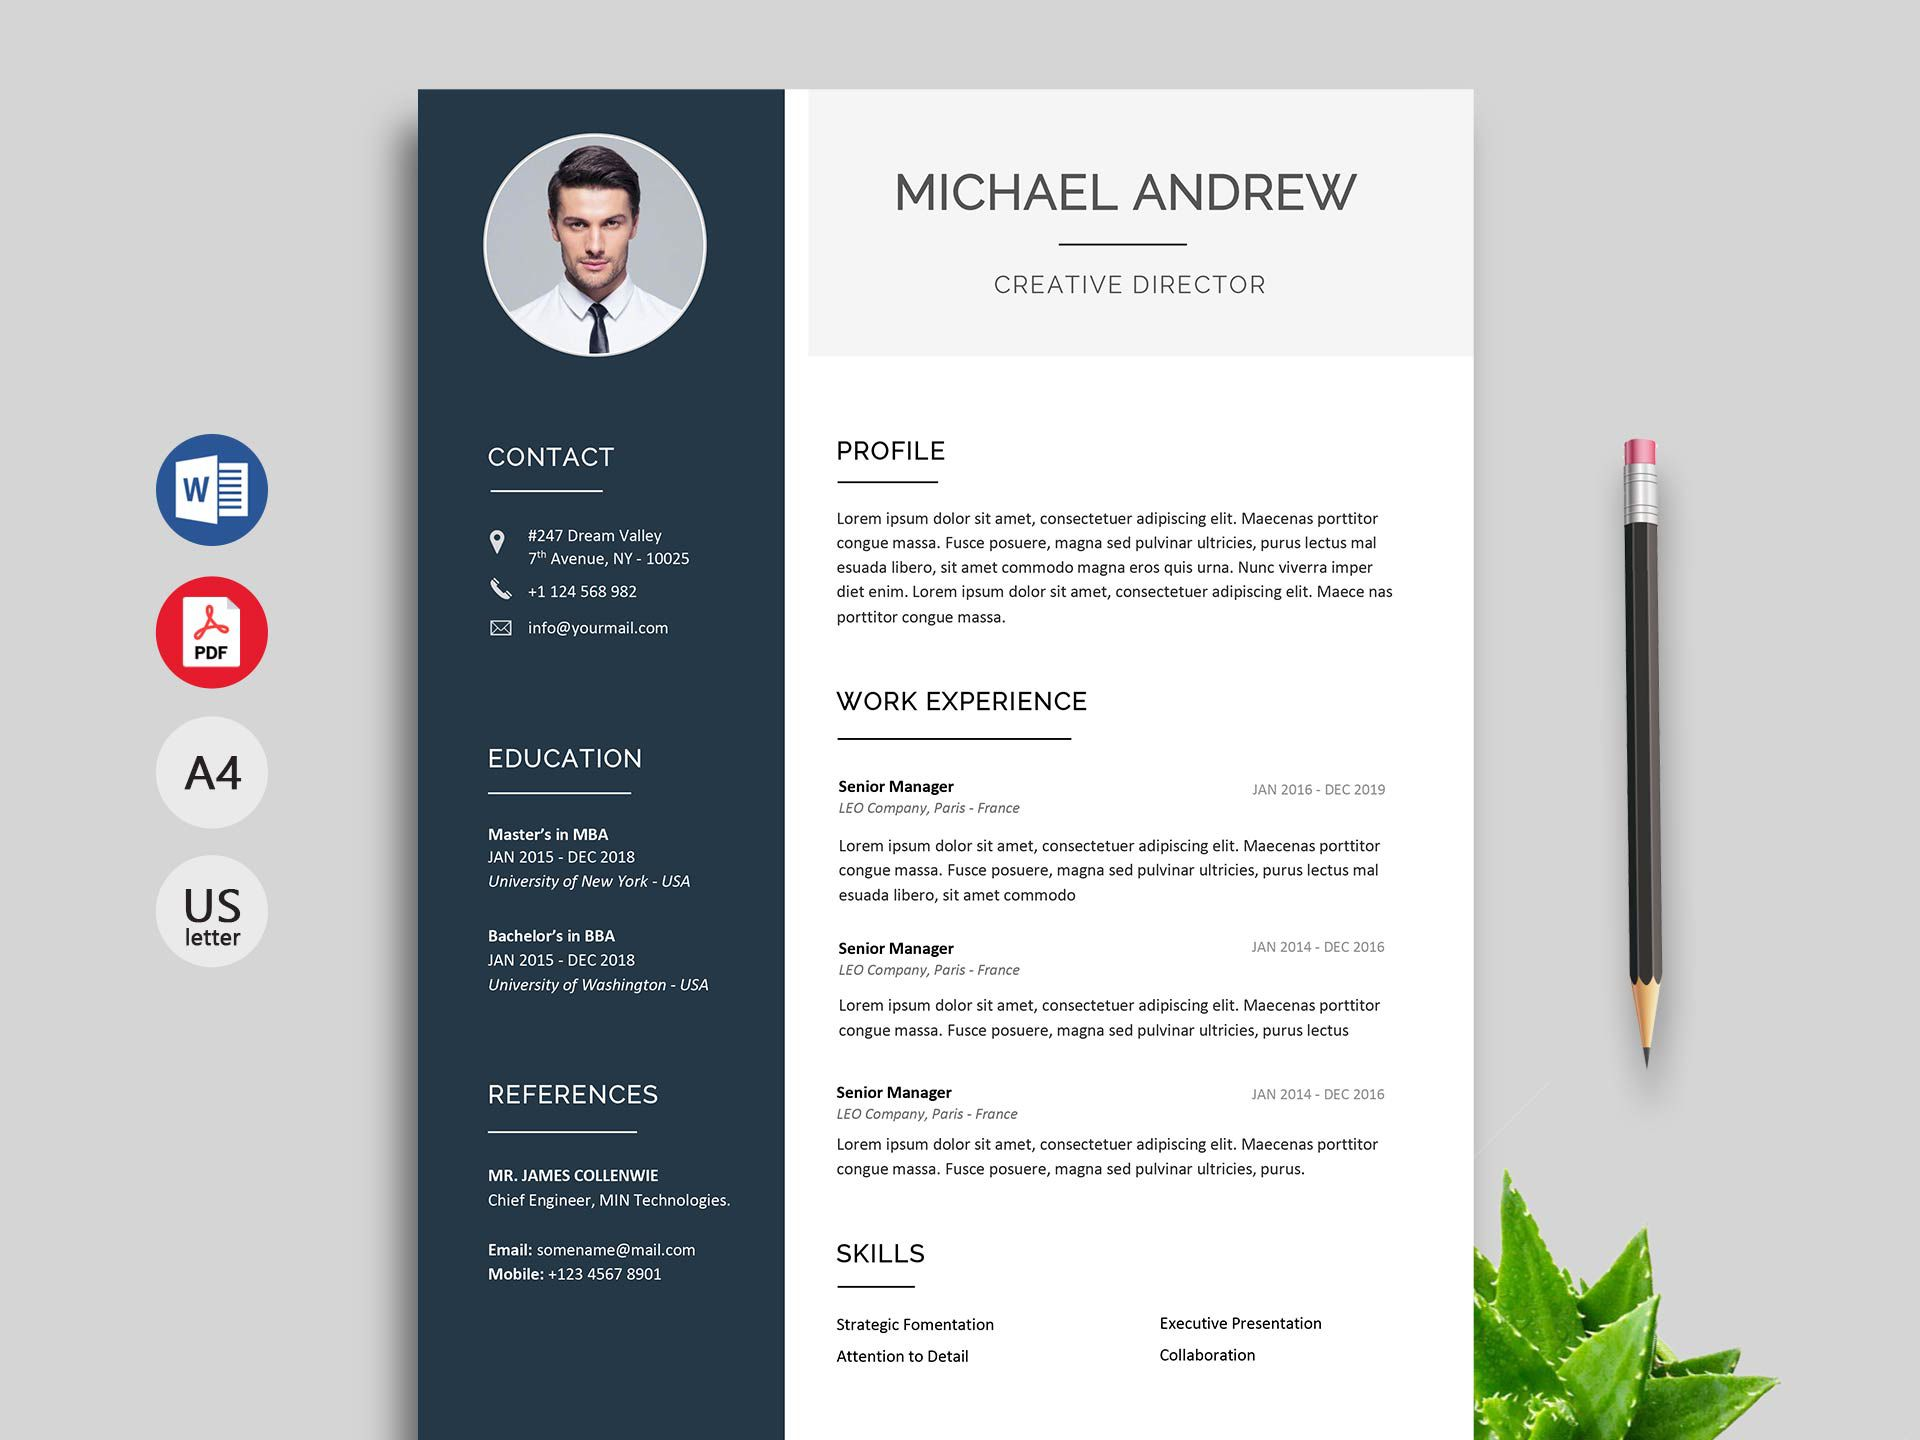 008 Astounding Curriculum Vitae Template Free Design  Download South Africa Format Pdf SampleFull